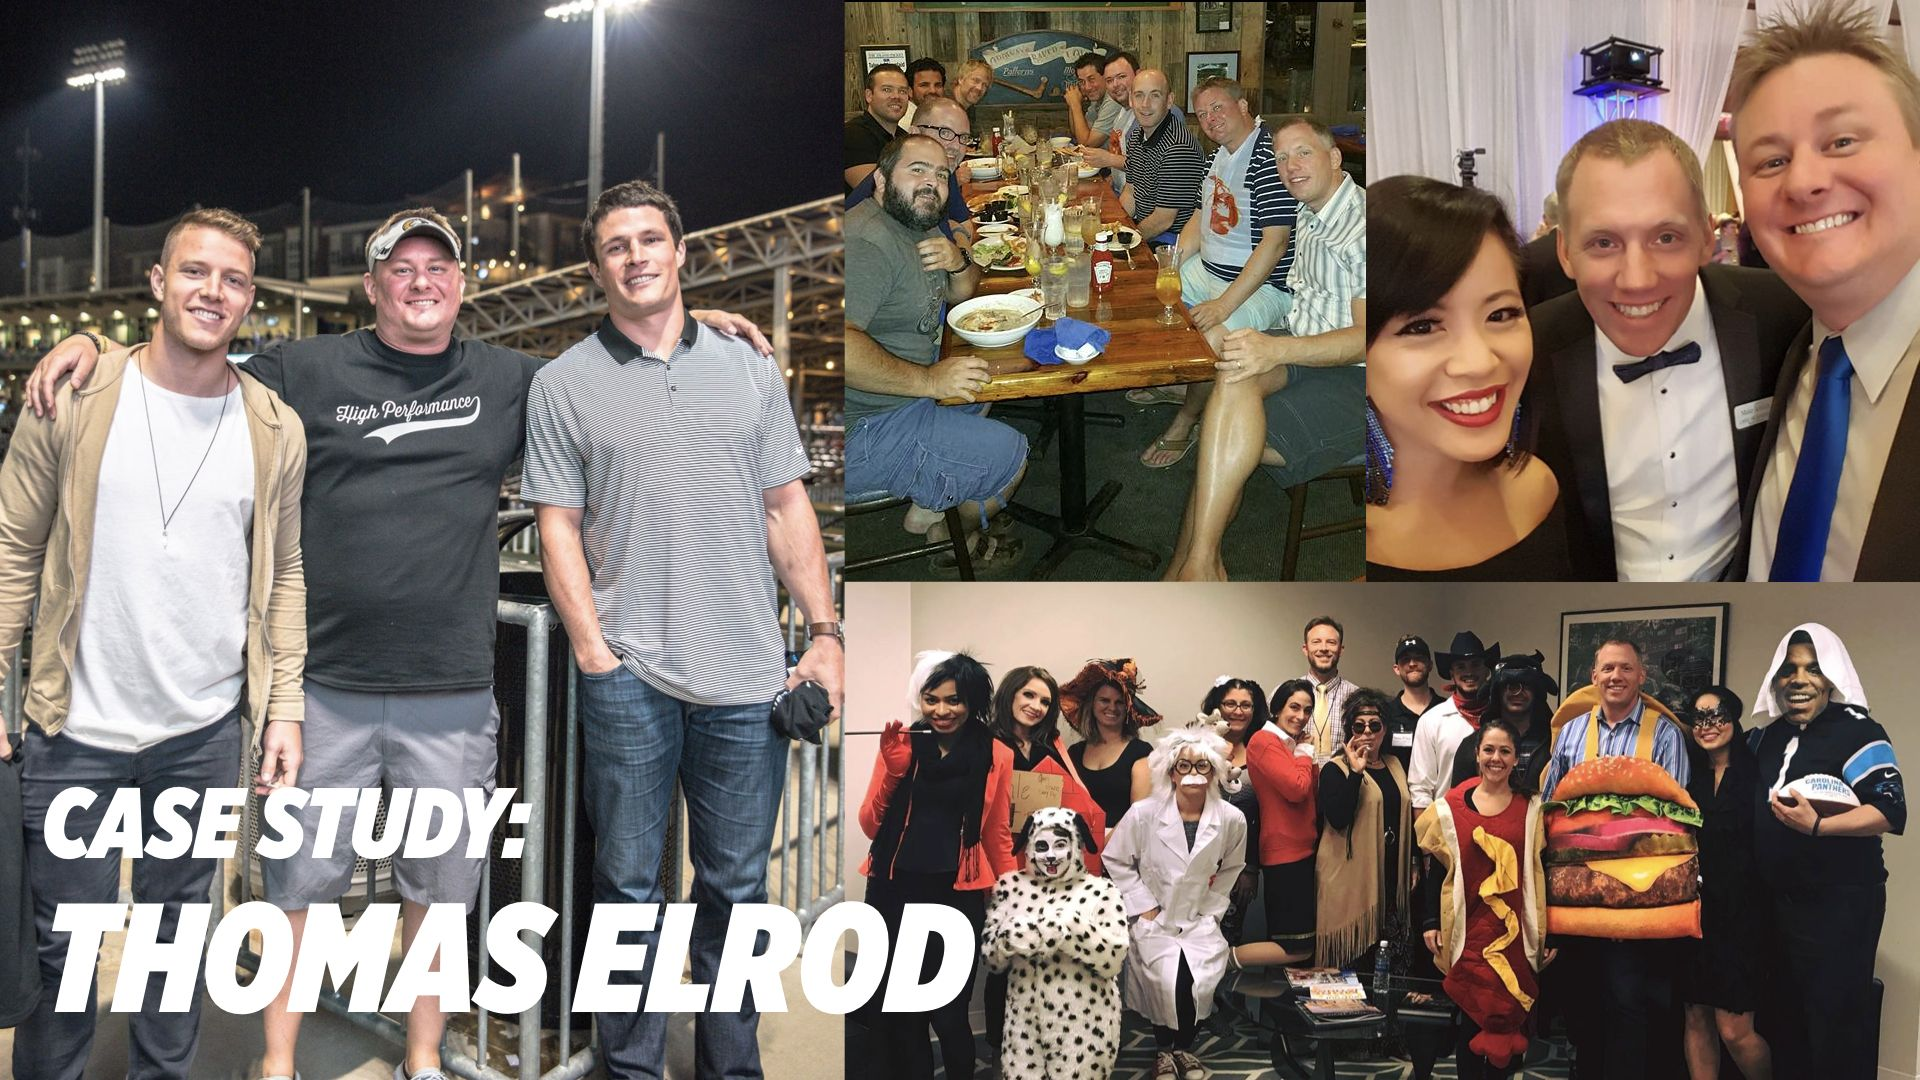 How Thomas Elrod Went From 3 Sales His First Year in the Business to Over $3M GCI While Exiting Production